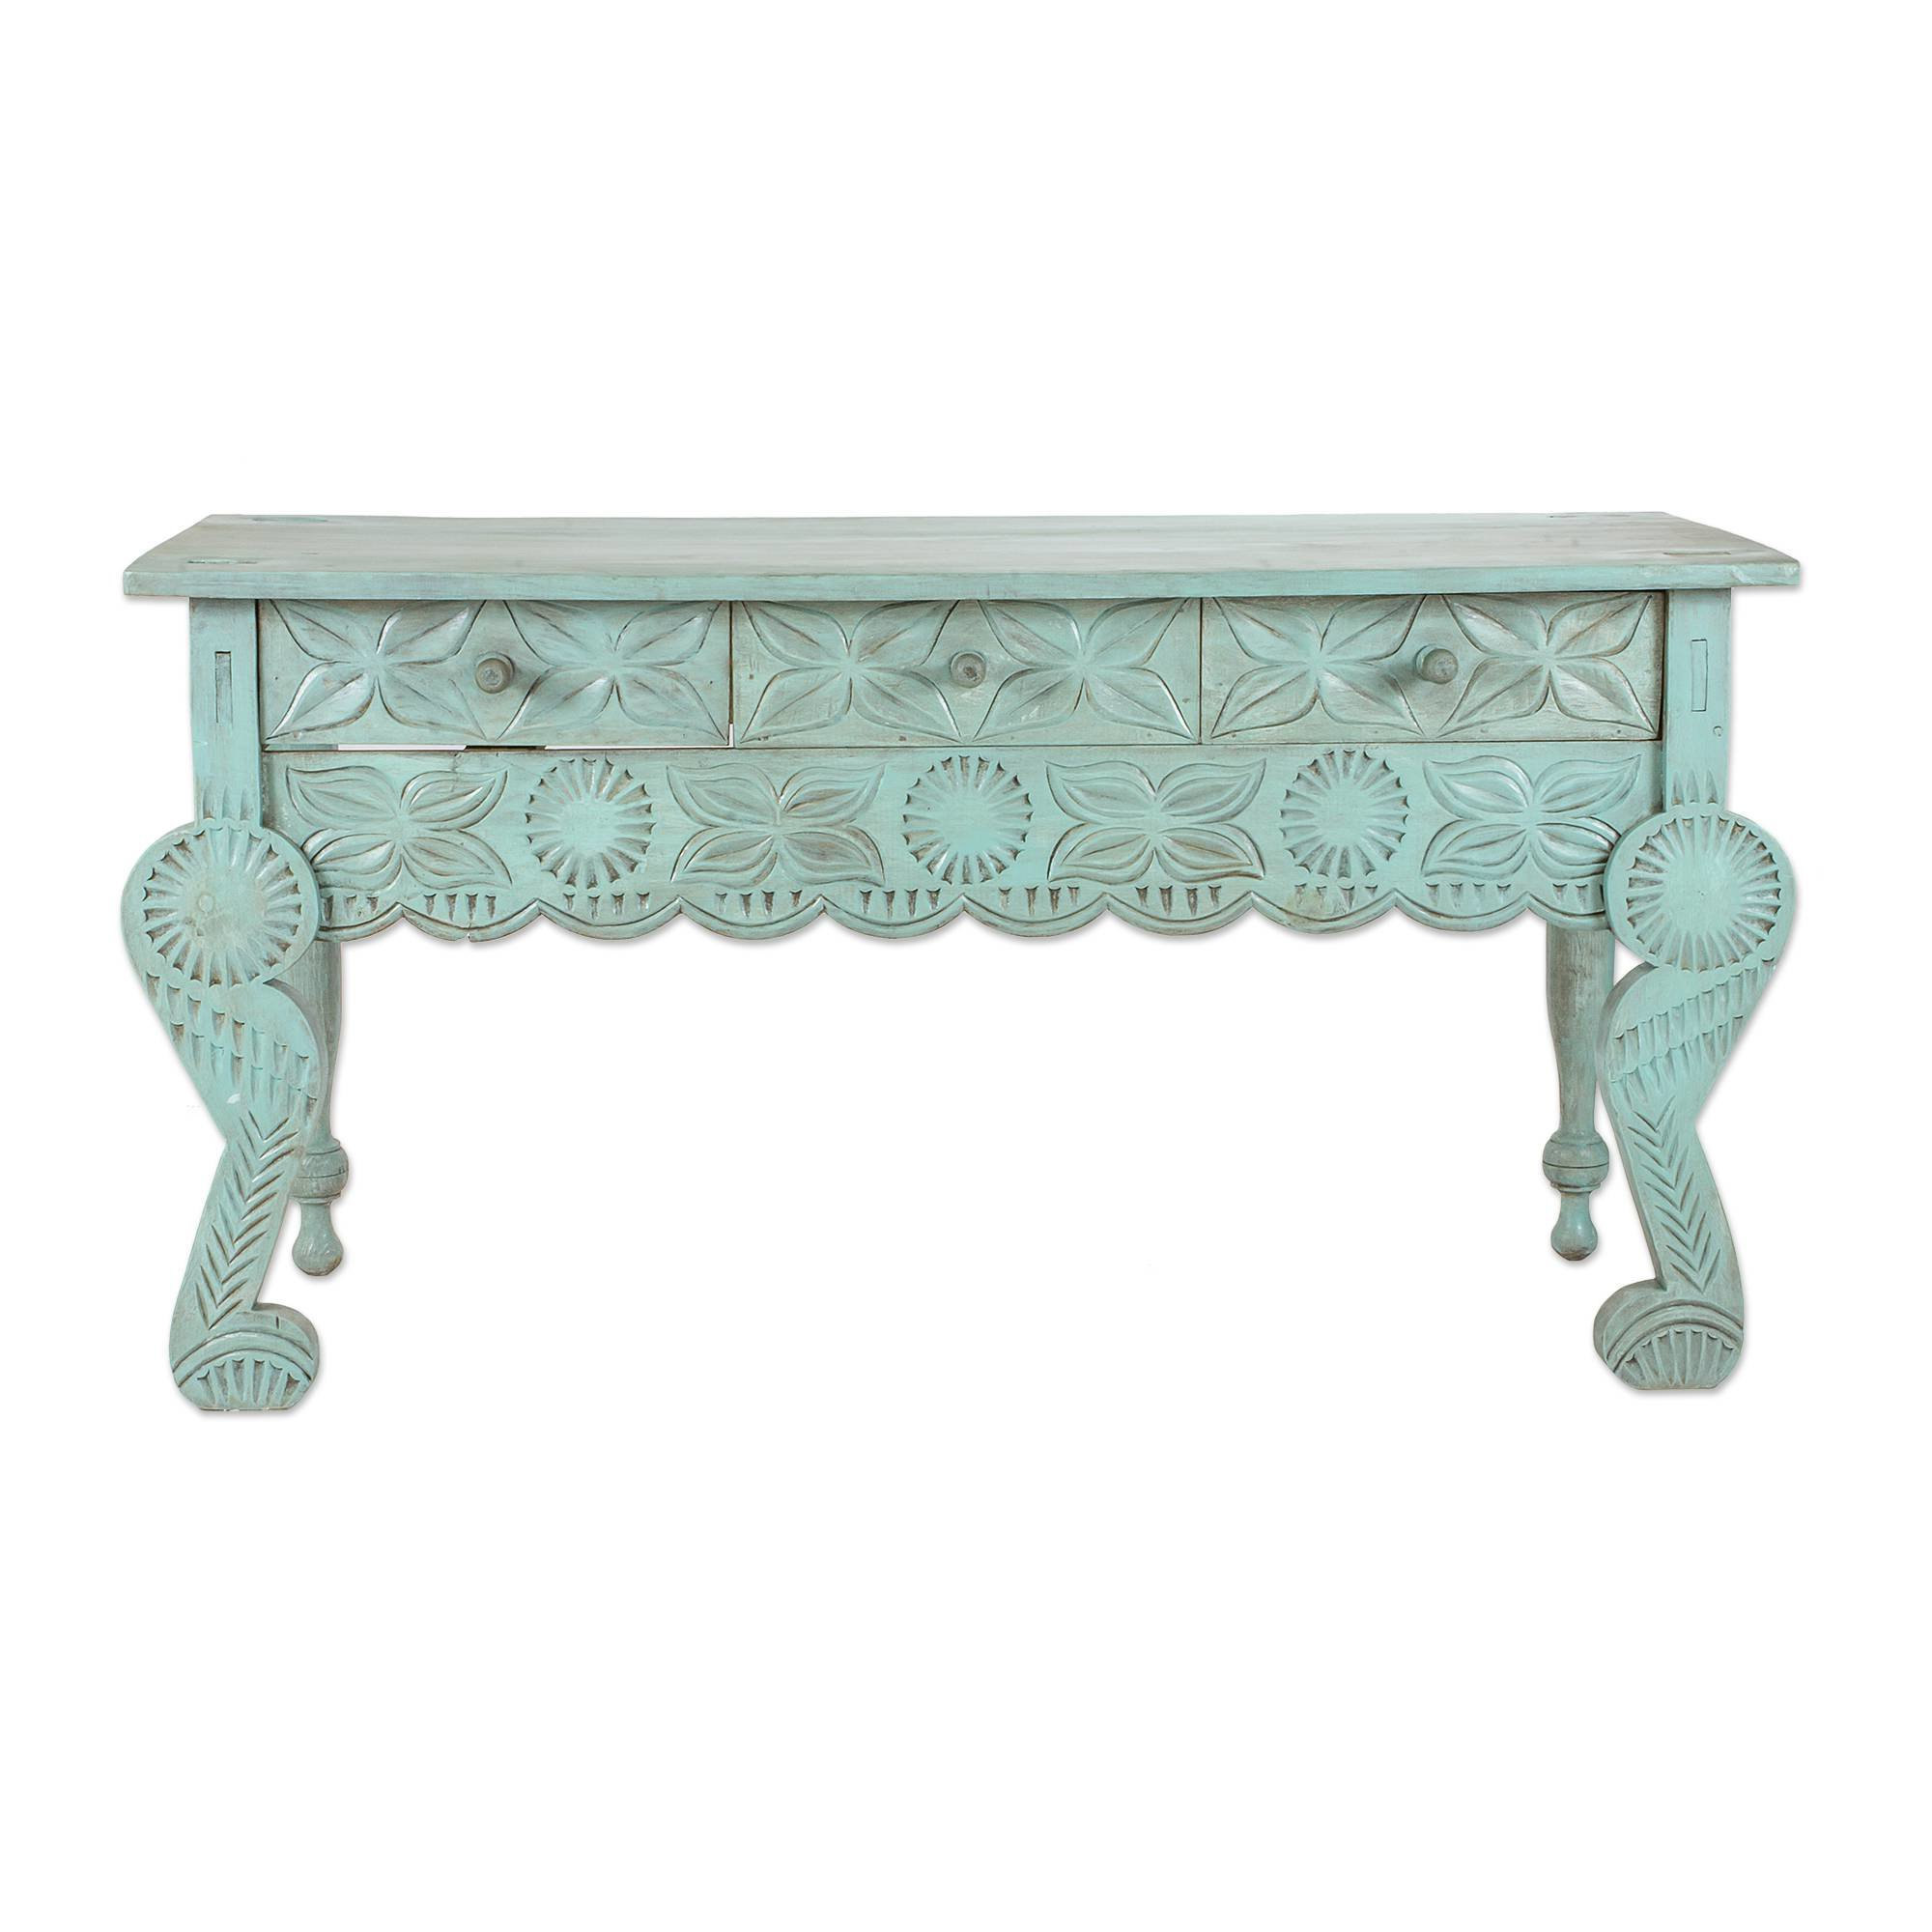 Bloomsbury Market Liddel Elegant Patina Wood Console Table | Wayfair Pertaining To Mix Patina Metal Frame Console Tables (View 1 of 20)